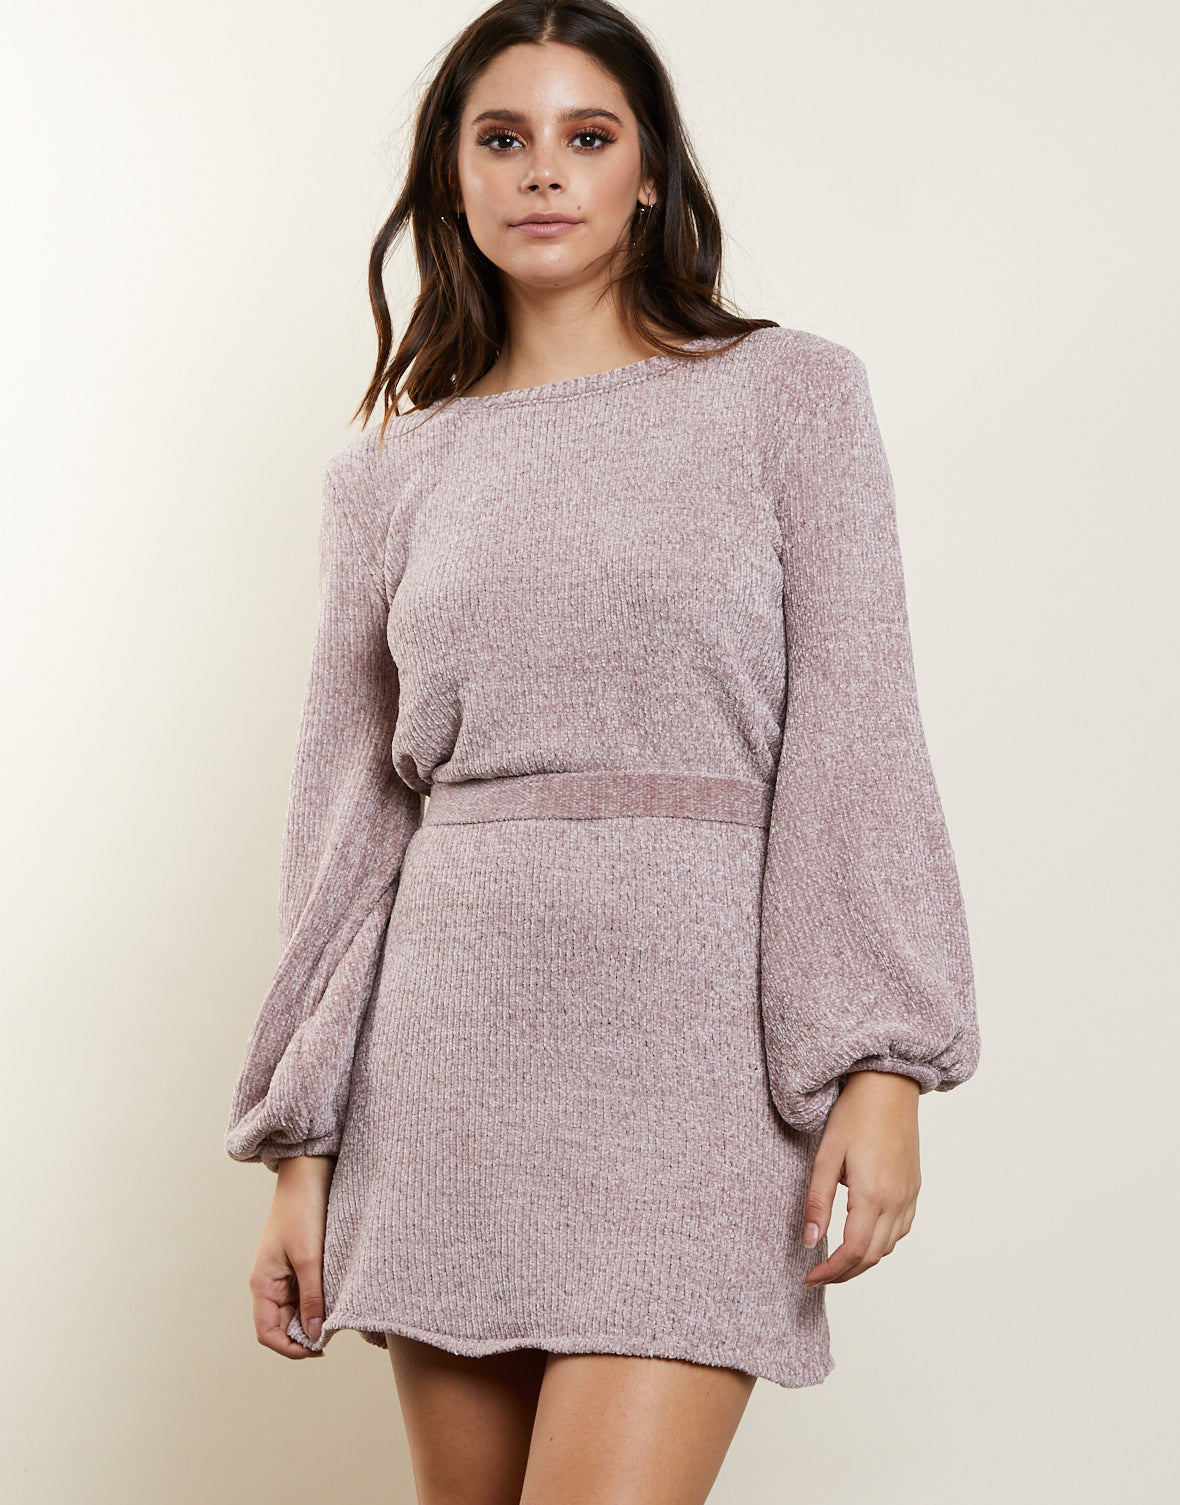 First Impressions Sweater Dress